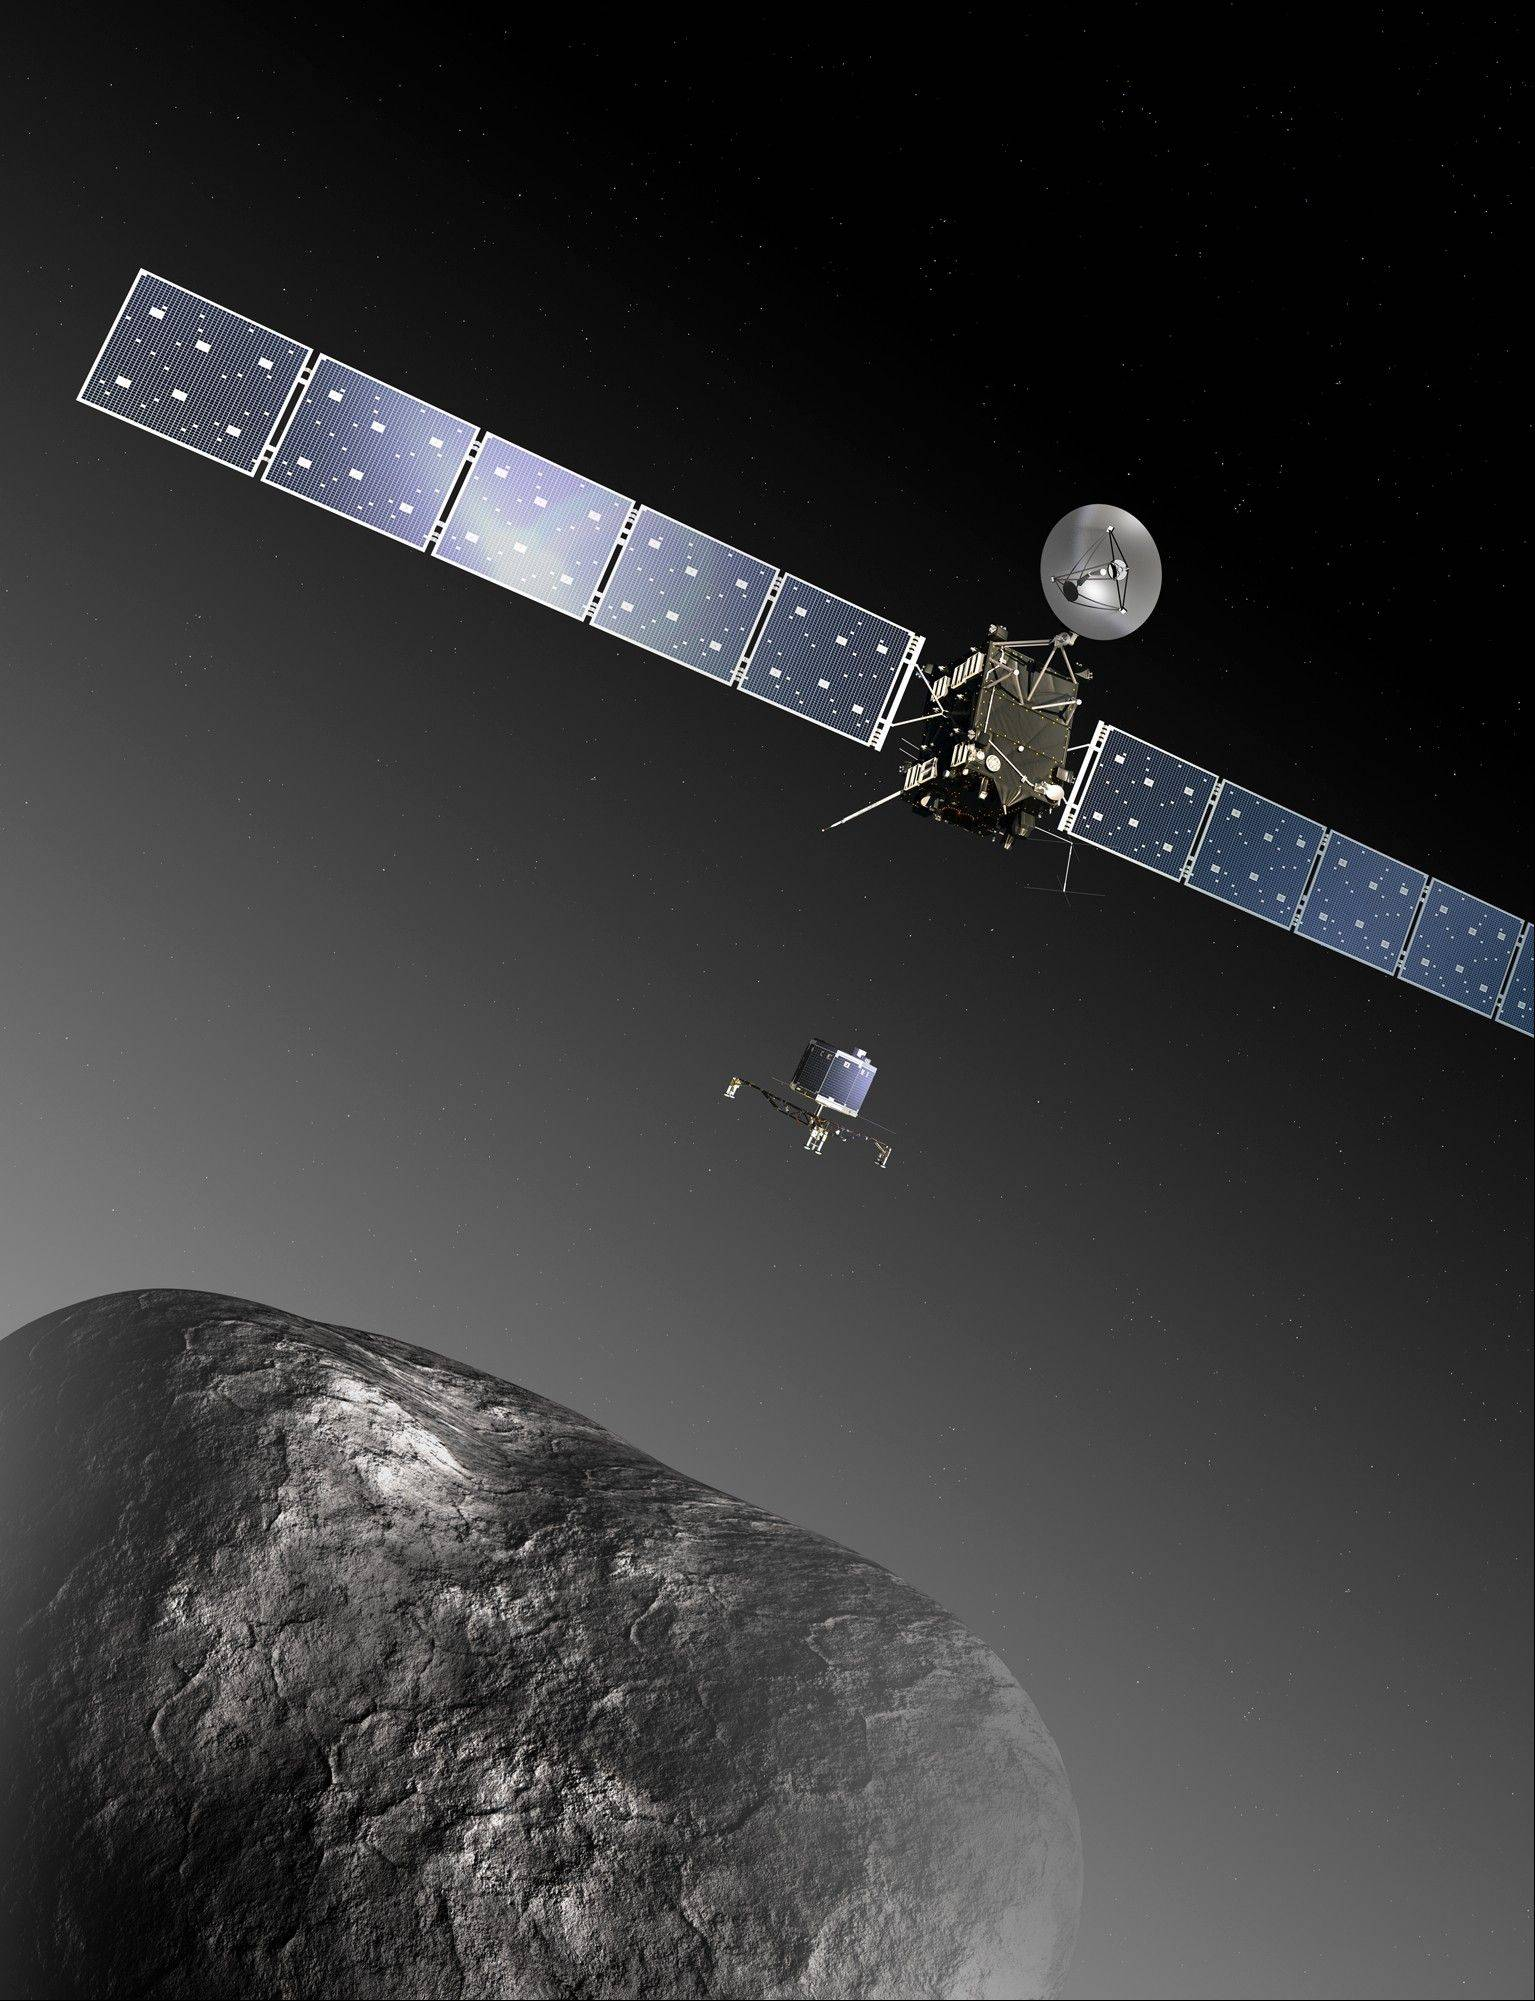 Though not to scale, this is an artist's impression of the Rosetta orbiter deploying the Philae lander to comet 67P/ChuryumovñGerasimenko. The European Space Agency has set a tentative date for the first landing of a spacecraft on a comet: next Nov. 11.